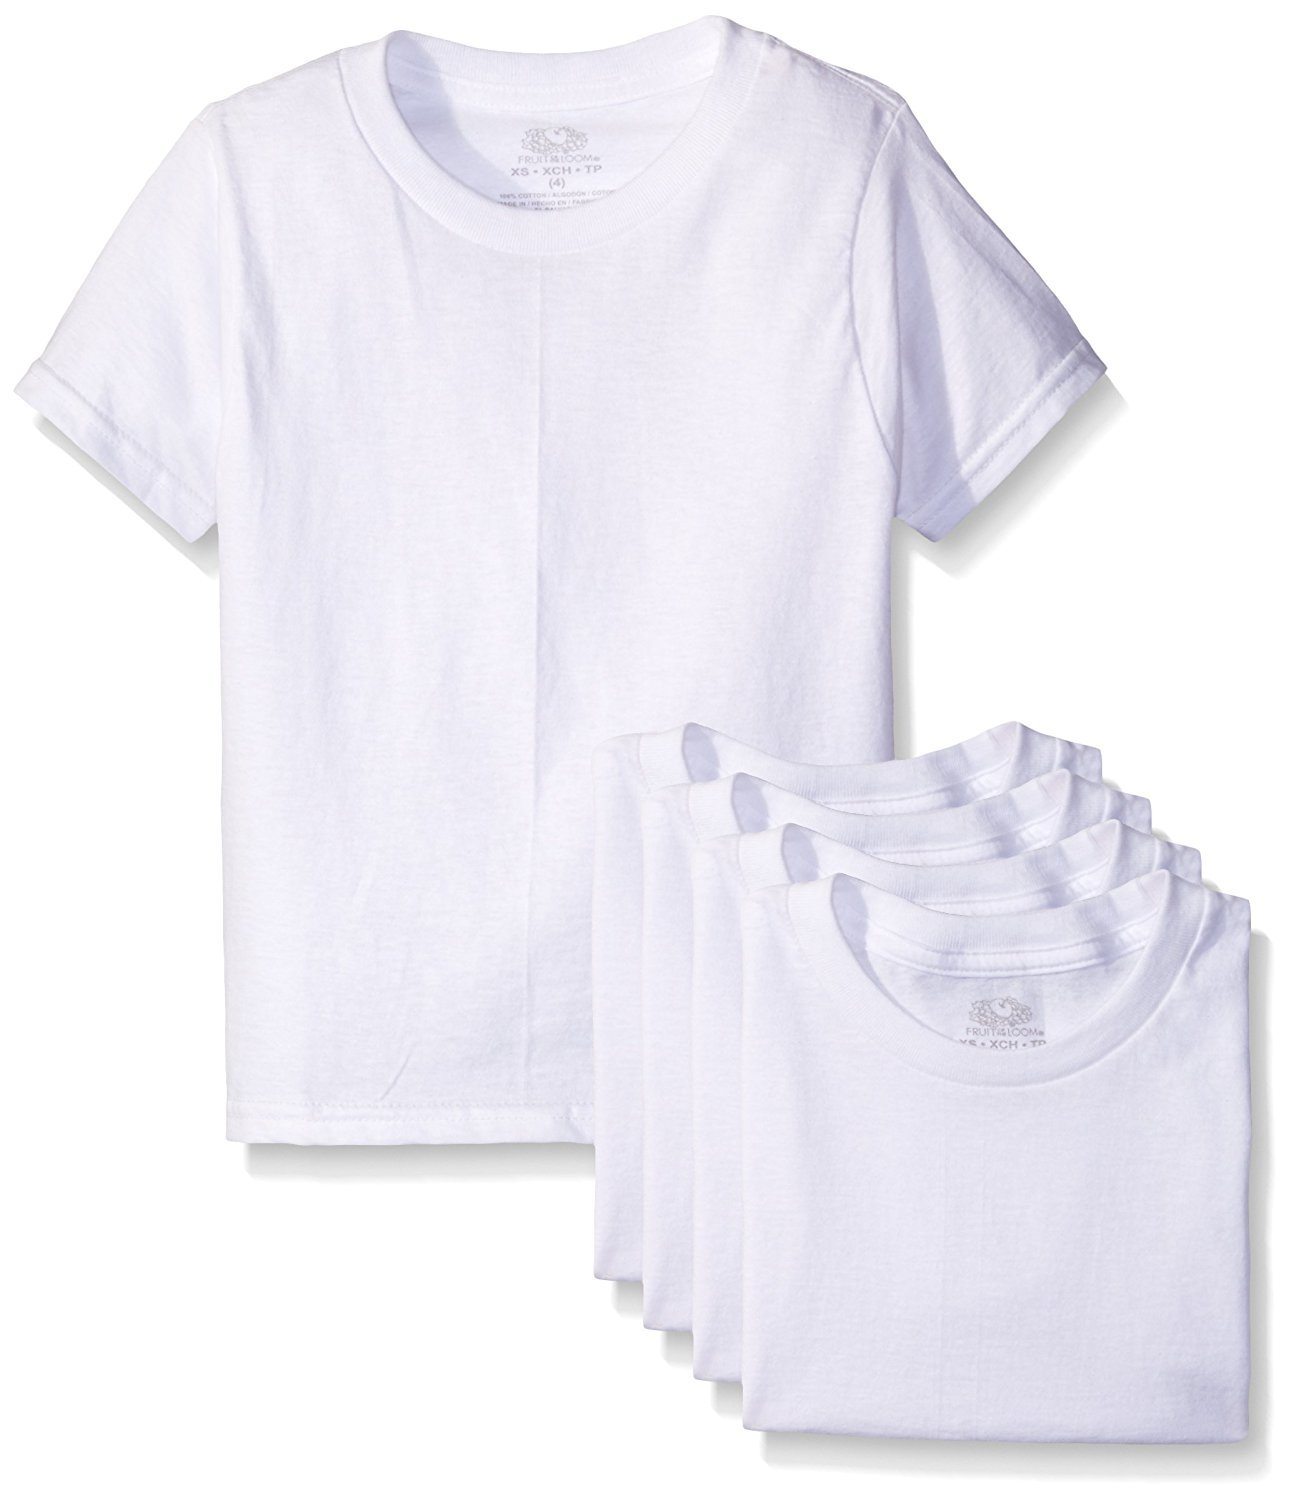 Fruit of the Loom Boys Crew Tee (Pack of 5) 5P525T